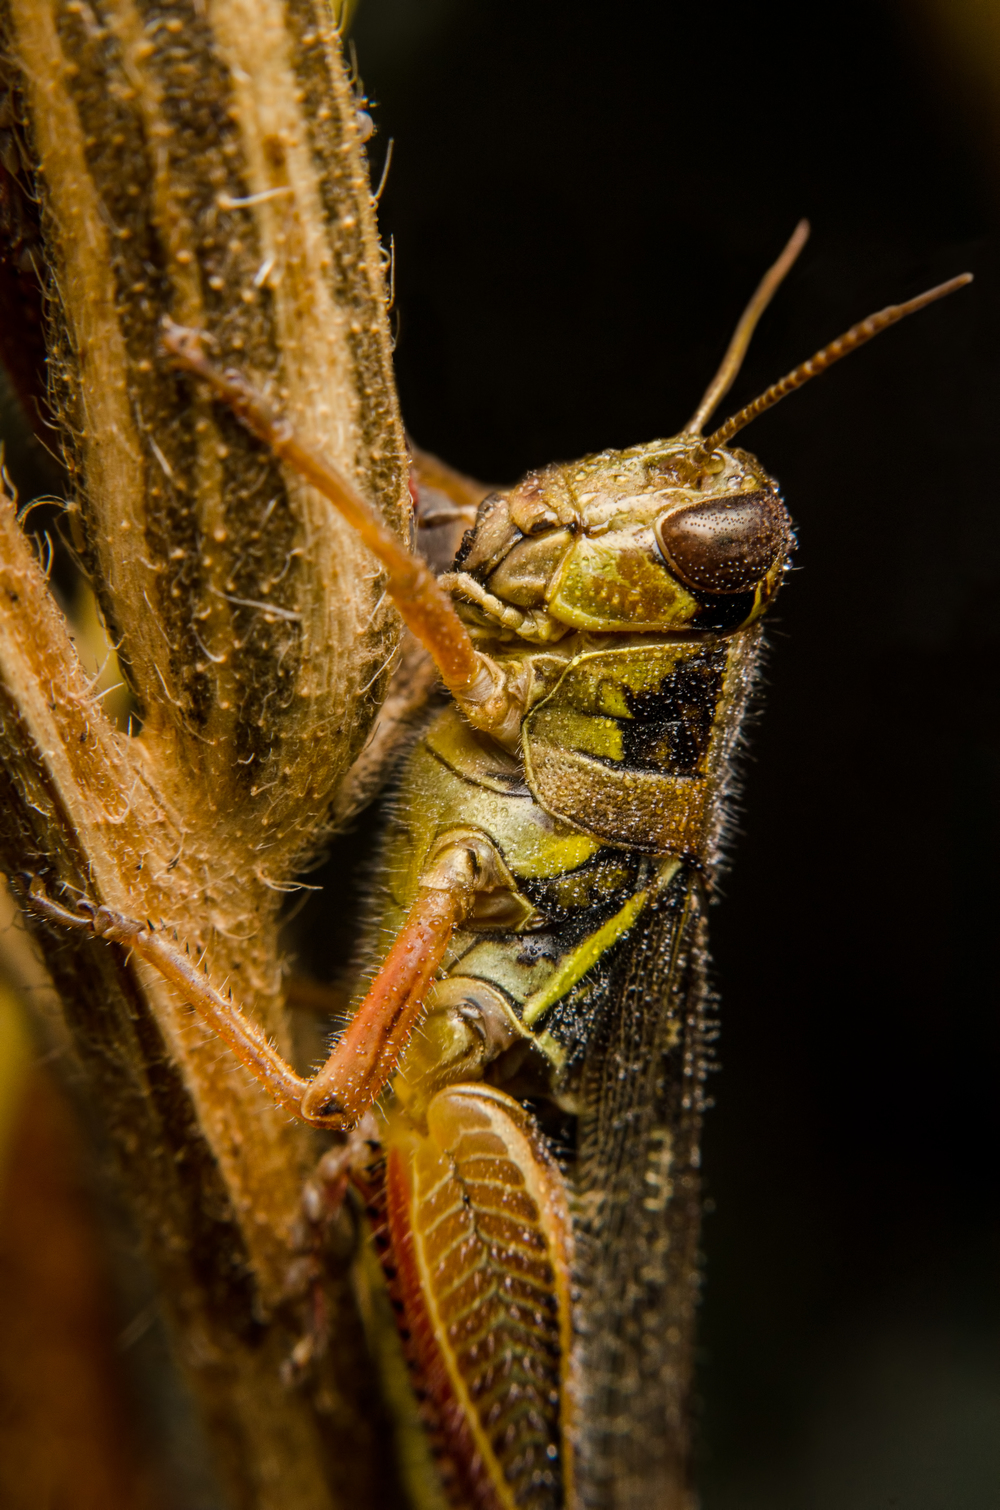 Grasshopper  Nikon D7000 ISO 200 1/125 sec. Nikkor 50mm f/1.4 reversed with BR-2 Reversing Ring, off-camera flash with modified soft box.